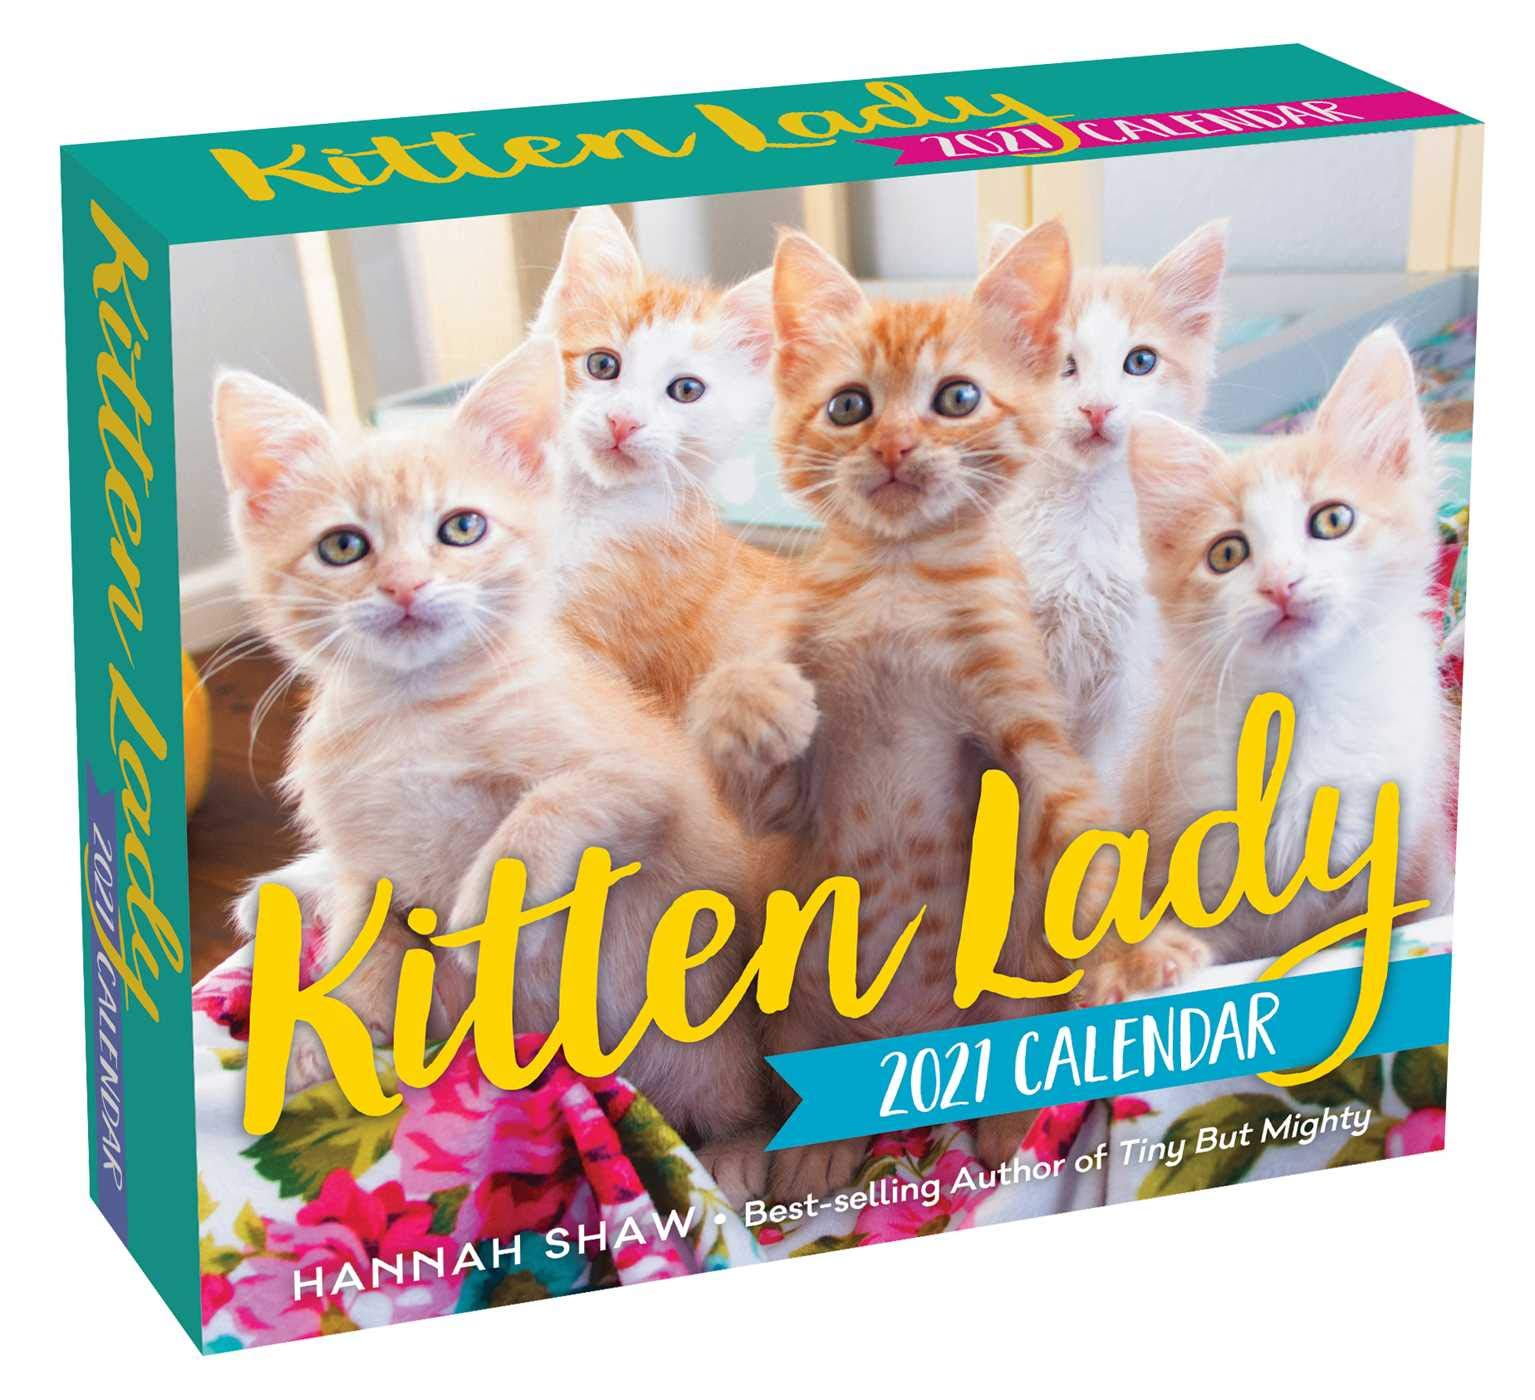 Best Selling Authors 2021 Amazon.com: Kitten Lady 2021 Day to Day Calendar (9781524859817